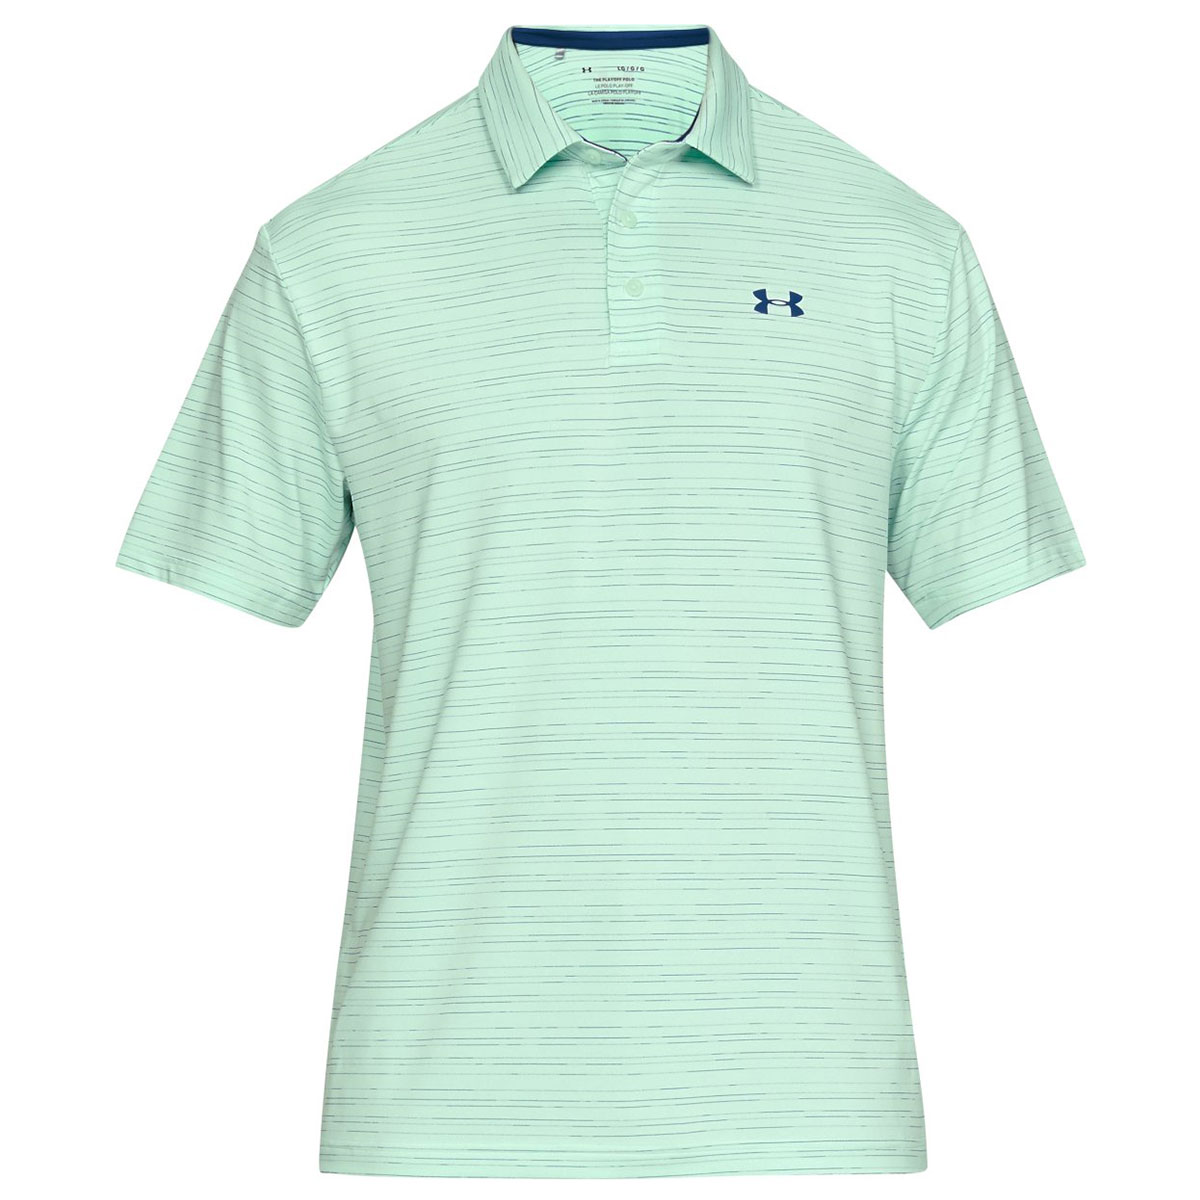 Under-Armour-Mens-2019-Playoff-Polo-2-0-Breathable-Light-Stretch-Polo-Shirt thumbnail 20